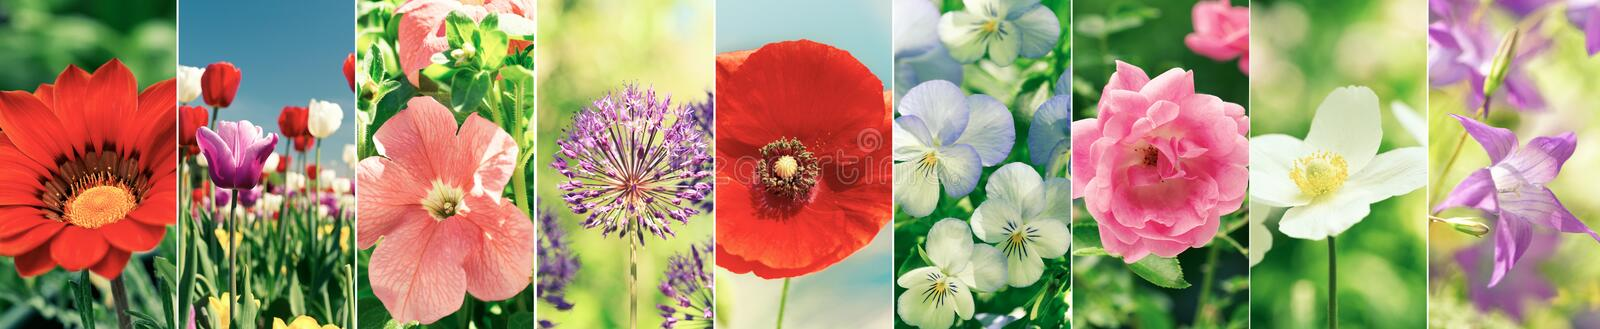 Flower collage of various types summer flowers stock photos